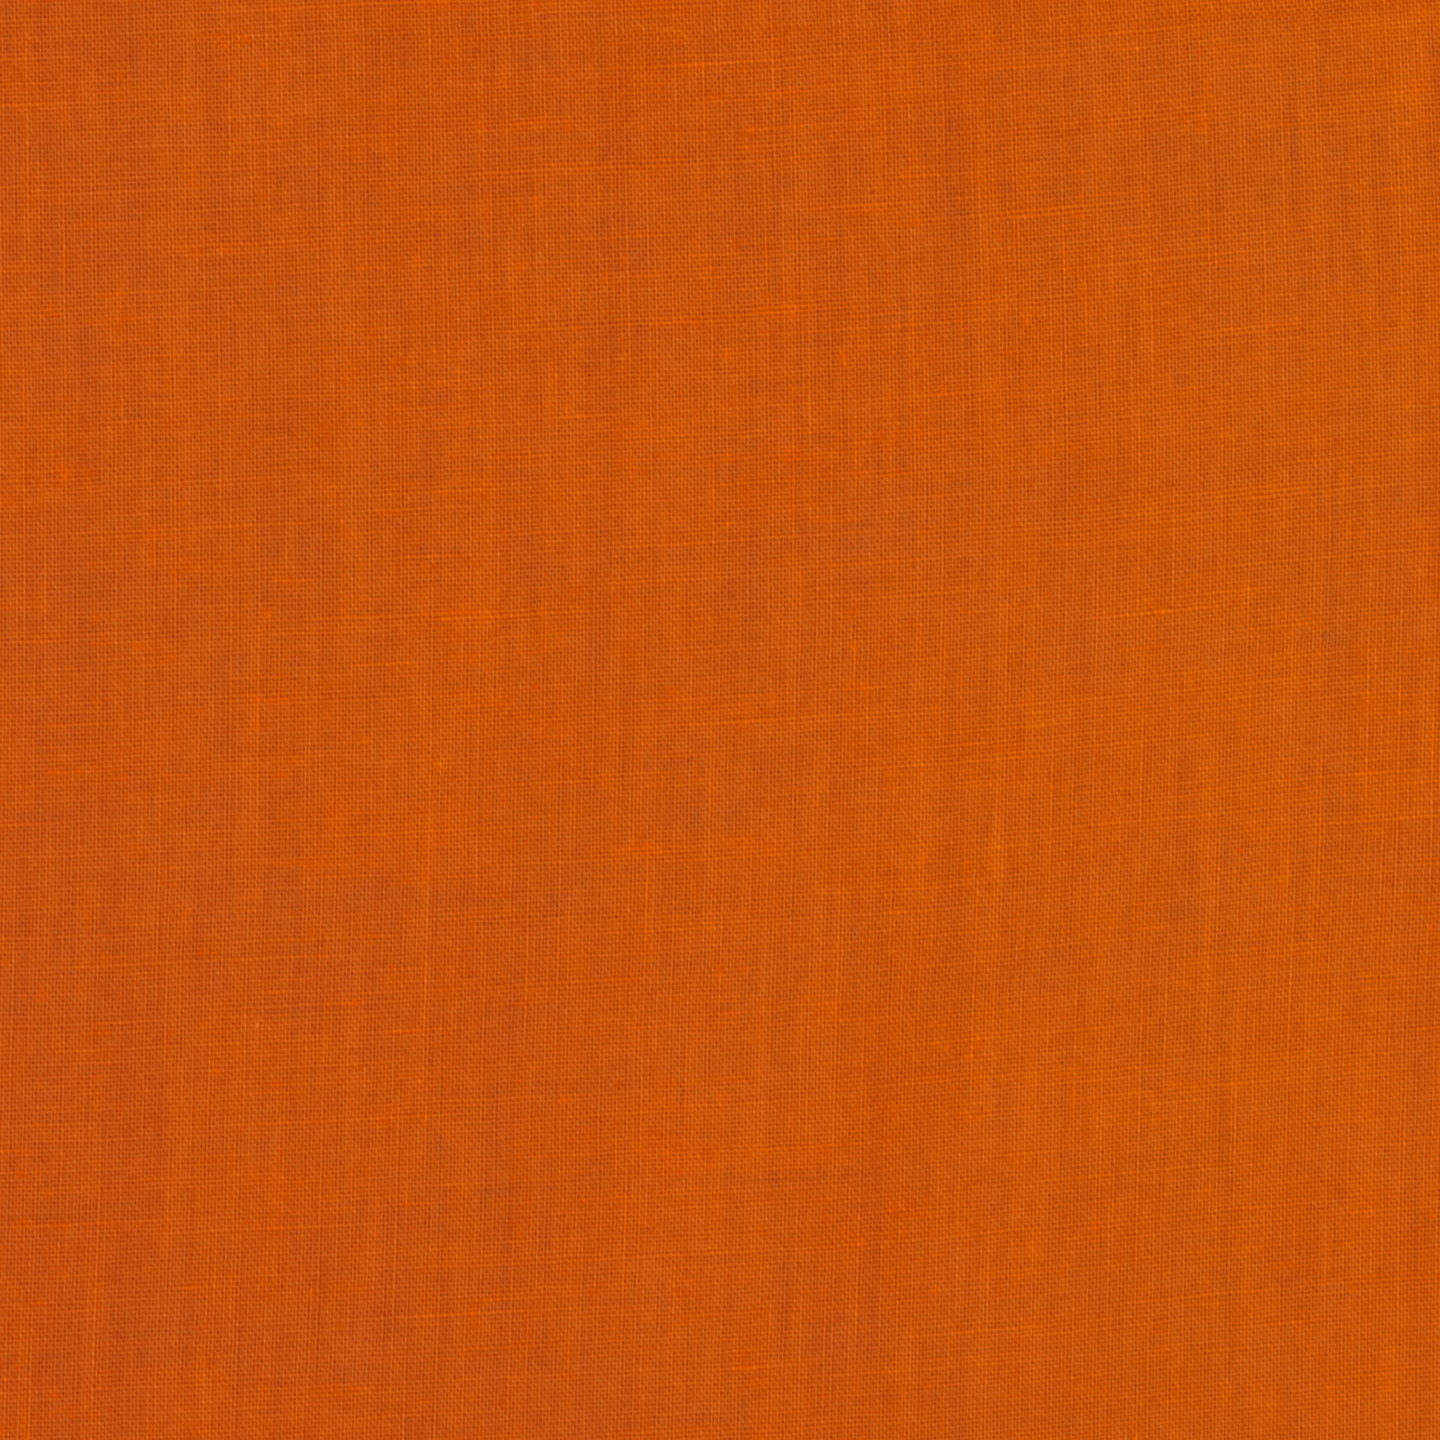 Cotton Voile Orange Fabric